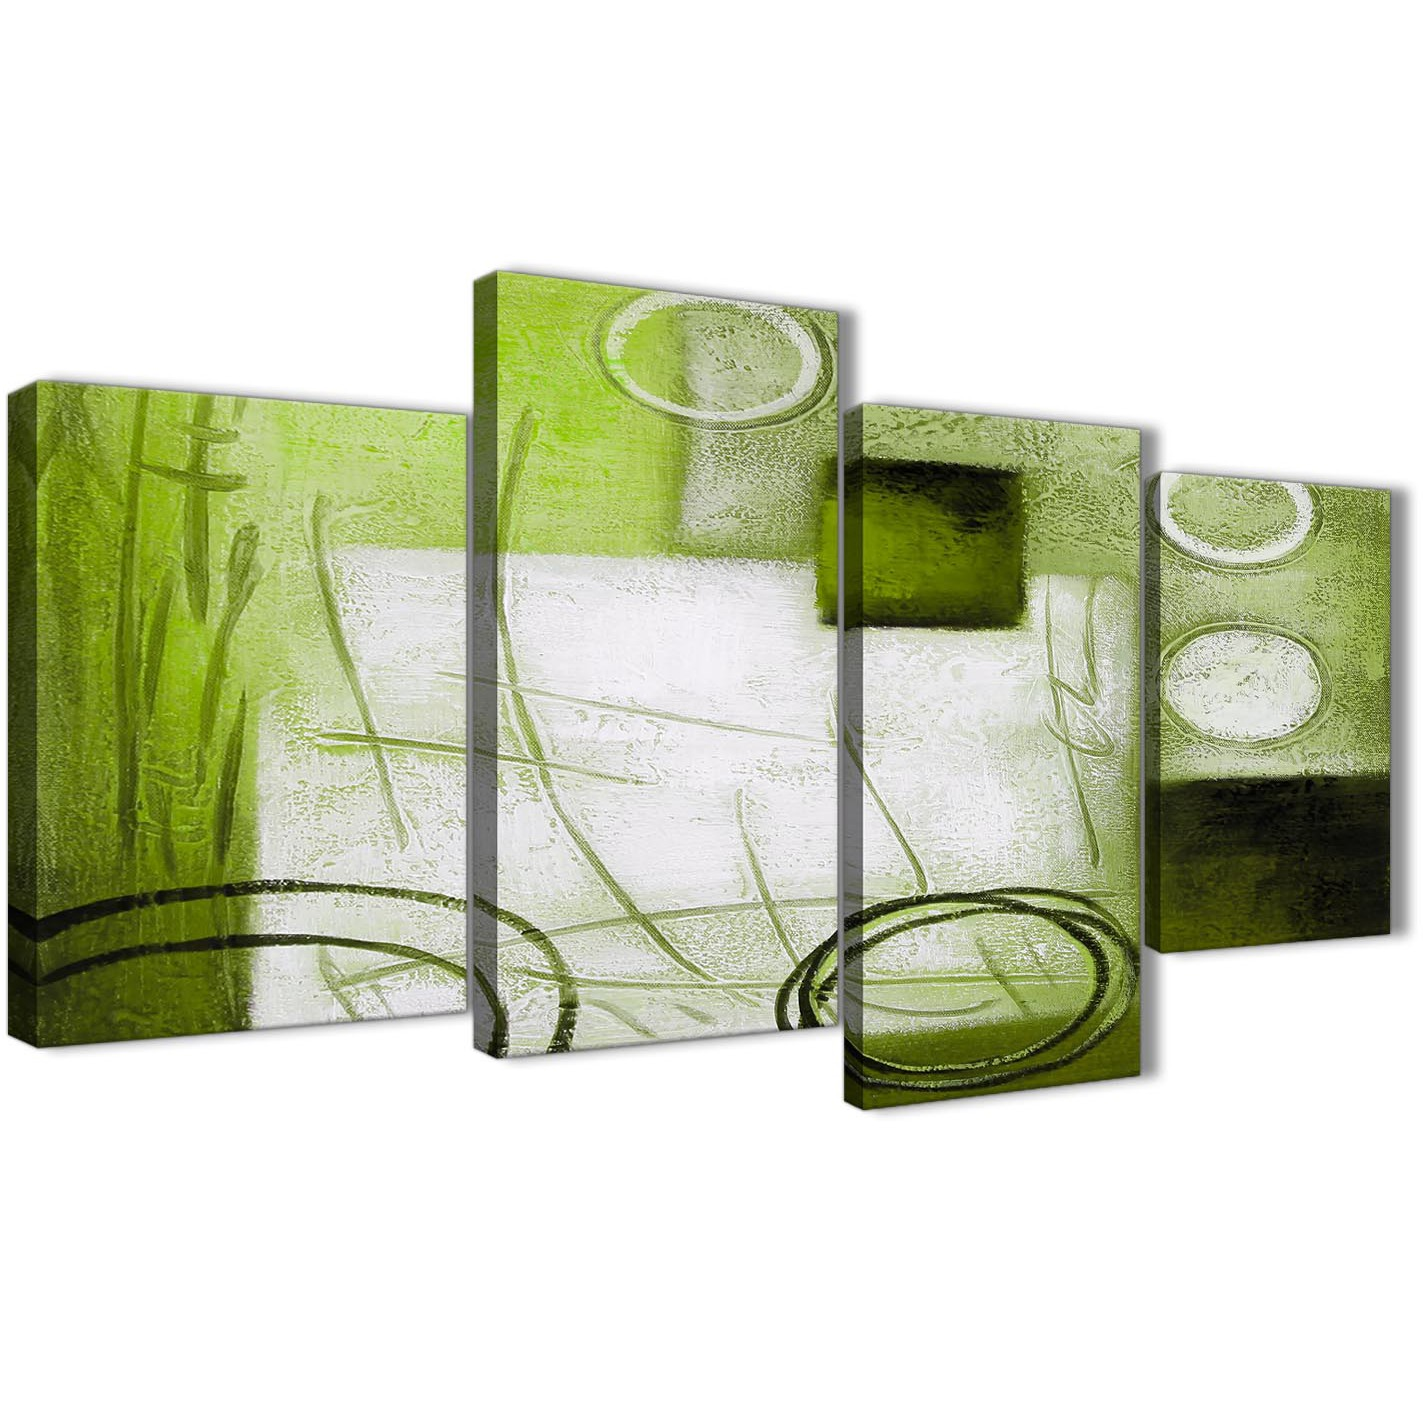 Bedroom Canvas Wall Art Uk: Large Lime Green Painting Abstract Bedroom Canvas Pictures